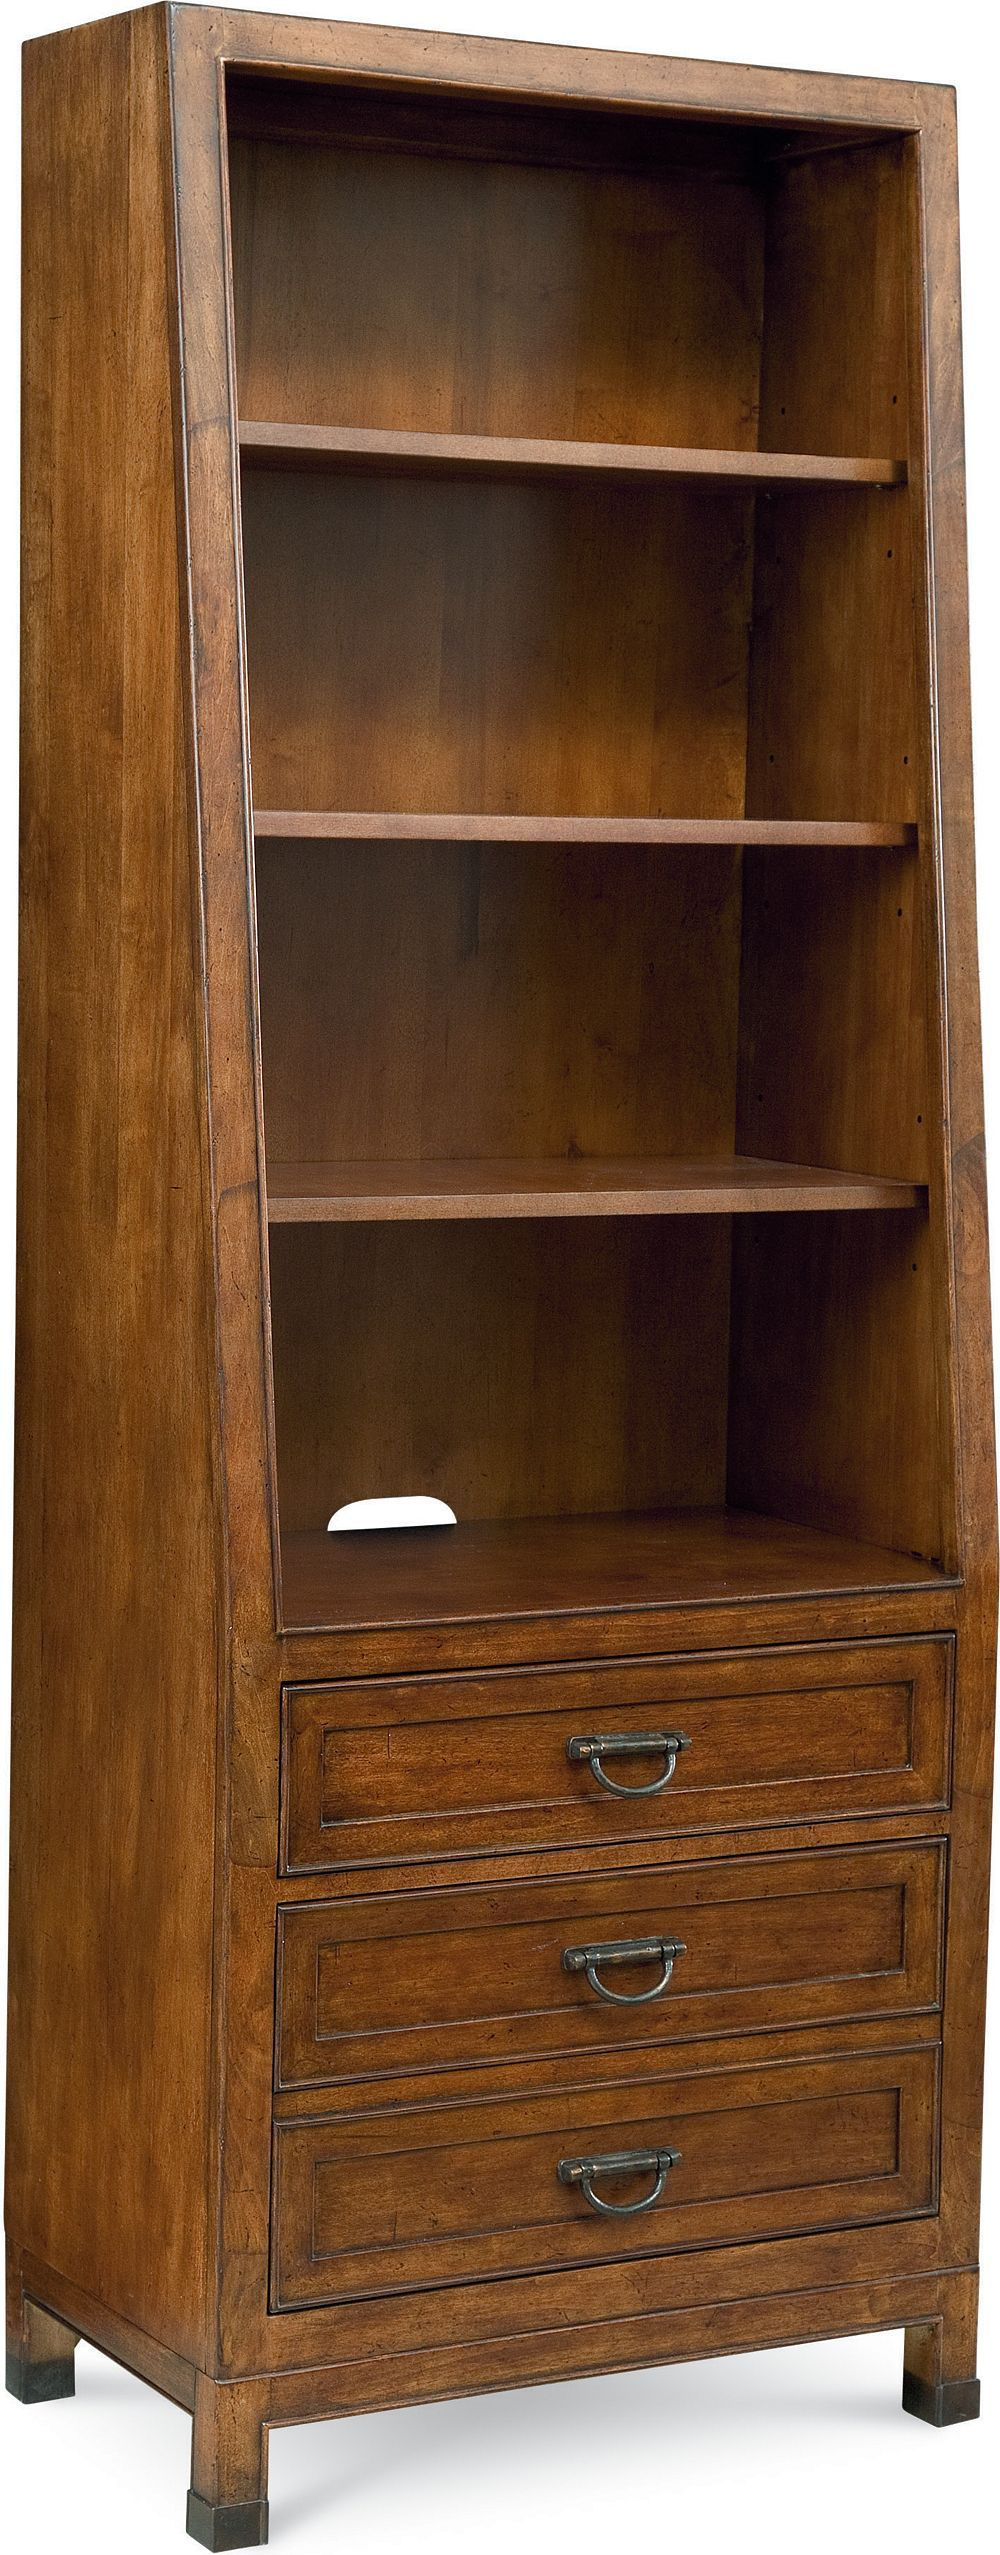 American Anthem Pier Cabinet An Updated Traditional Arts